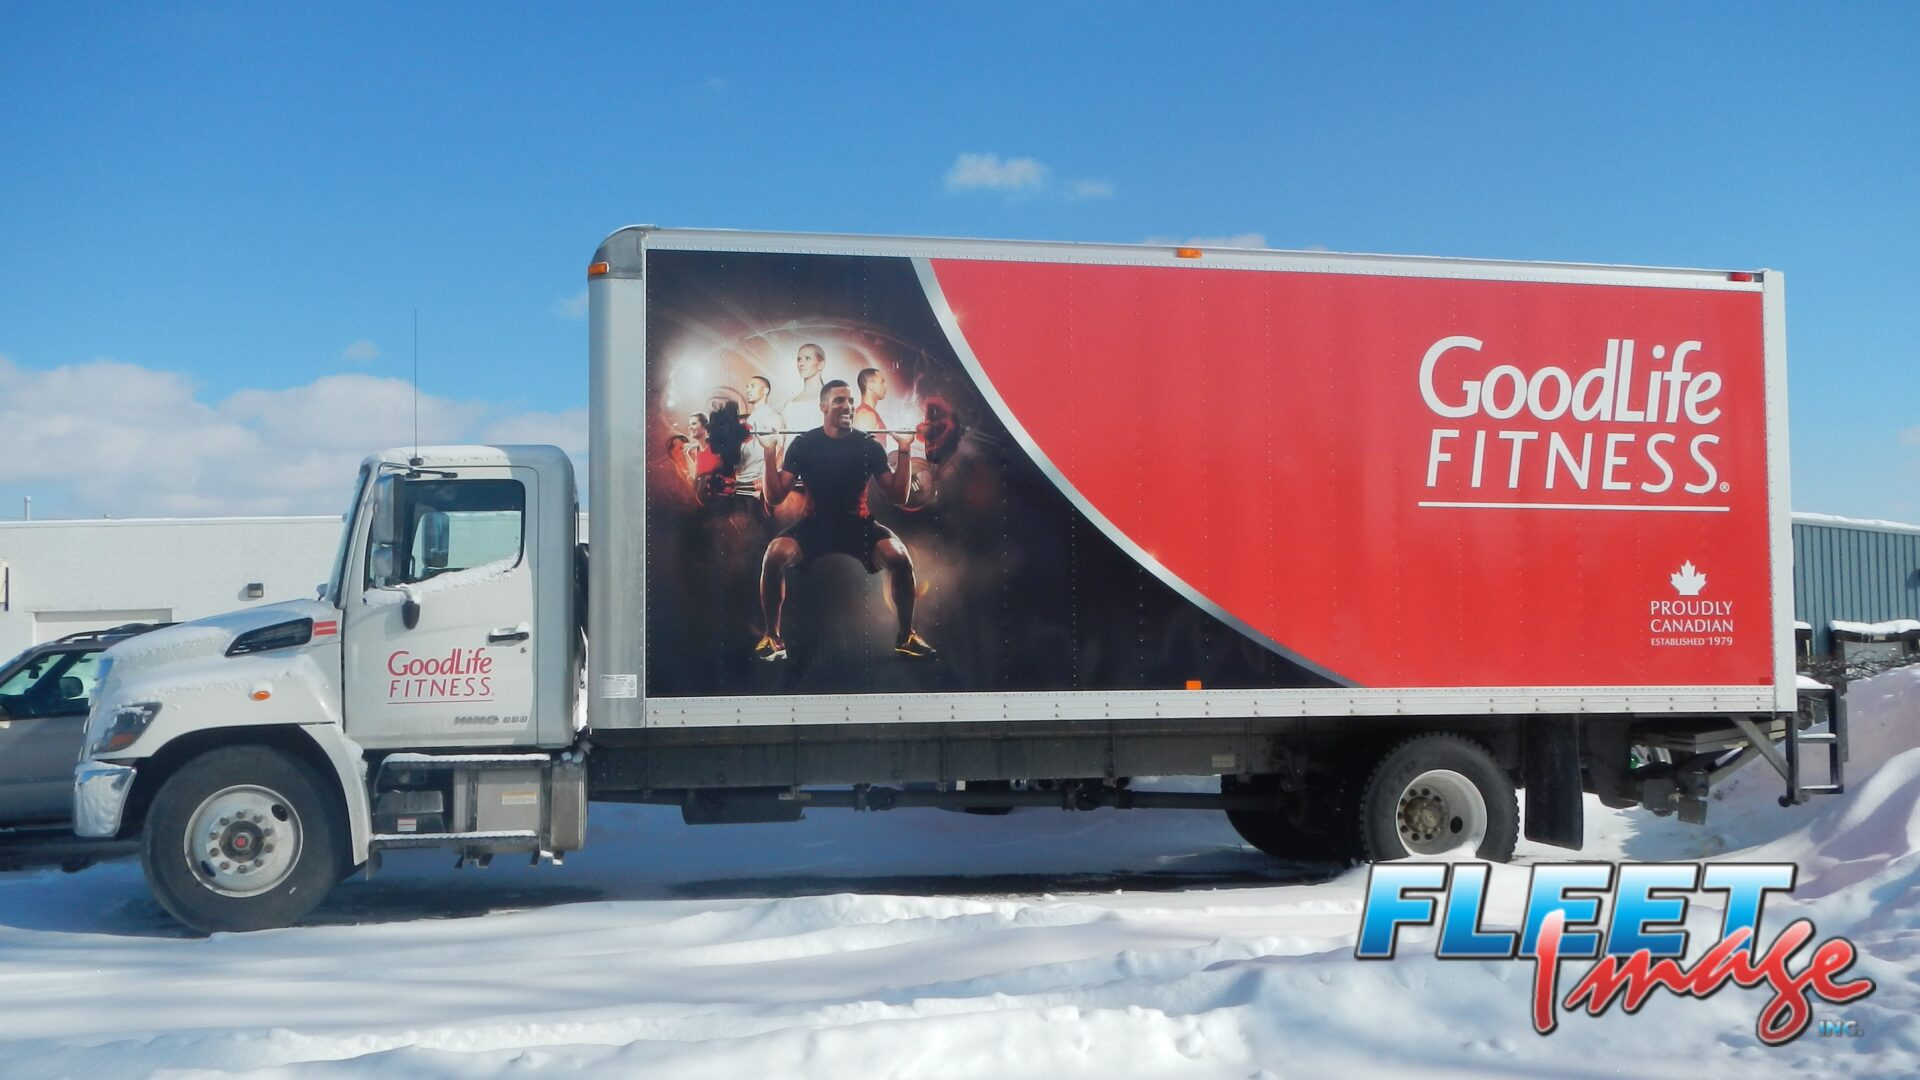 GoodLife Fitness decal sticker on a truck